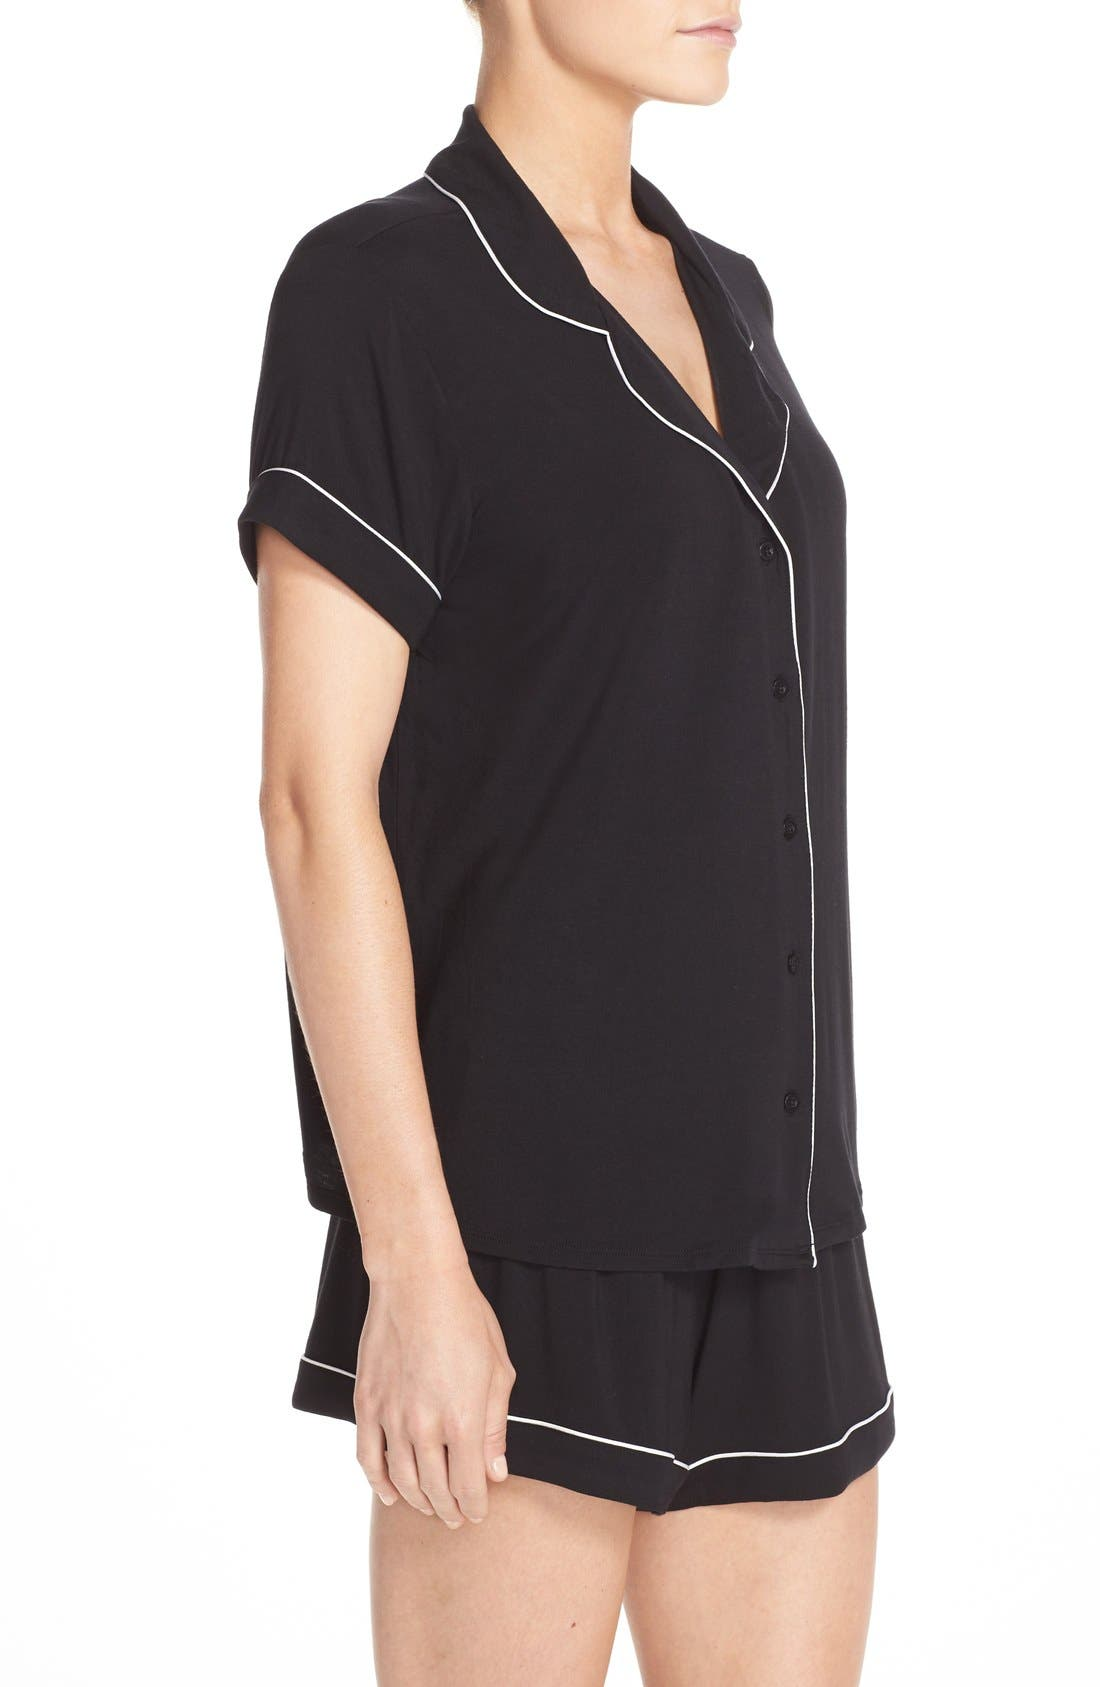 NORDSTROM LINGERIE, Moonlight Short Pajamas, Alternate thumbnail 3, color, BLACK